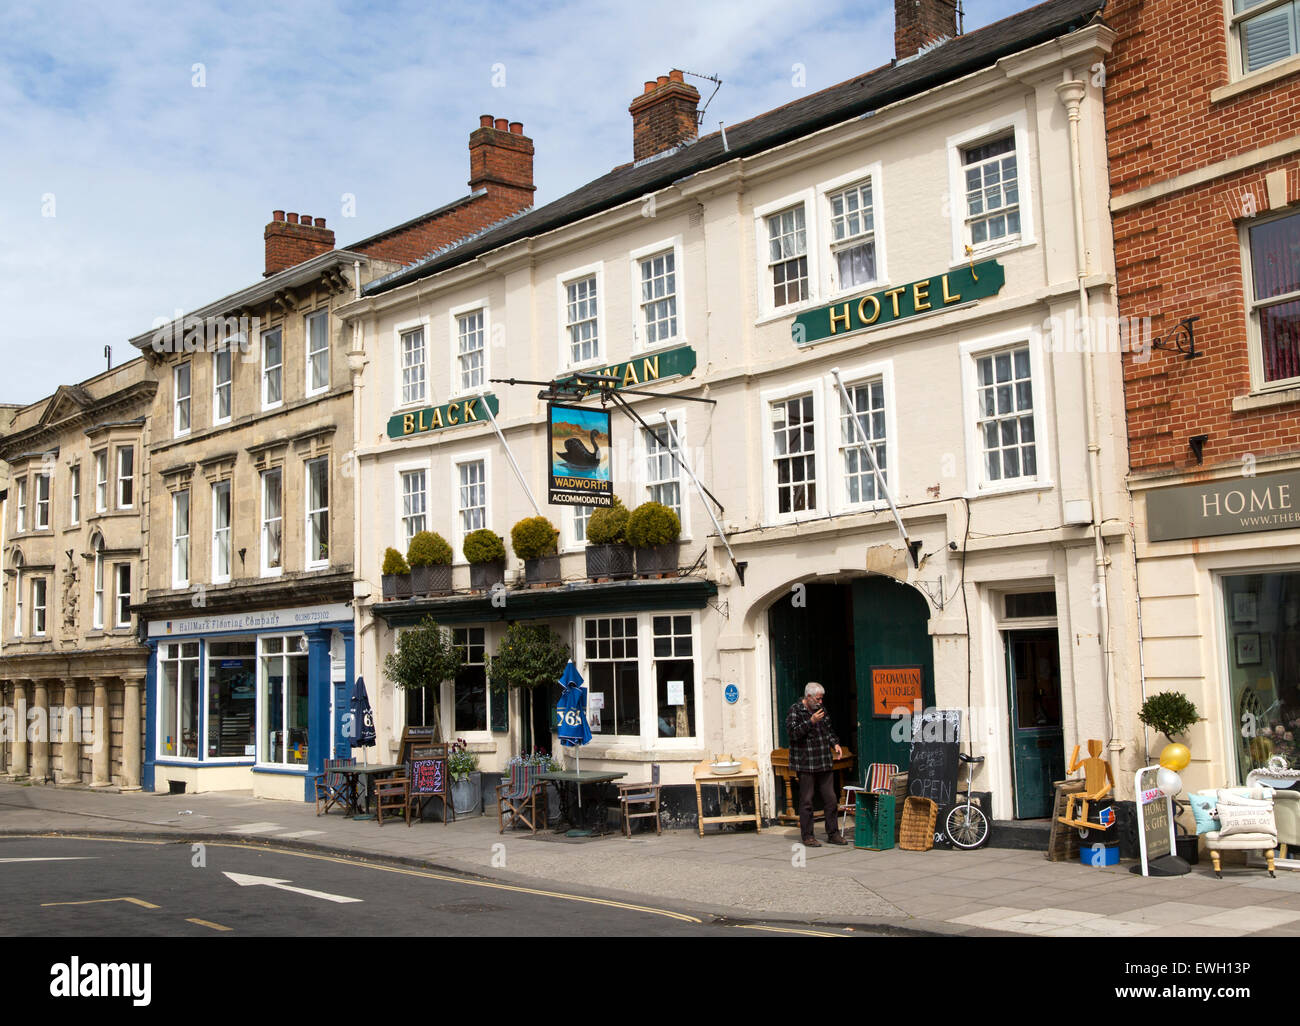 Historic Black Swan Hotel, Market Place, Devizes, Wiltshire, England, UK - Stock Image